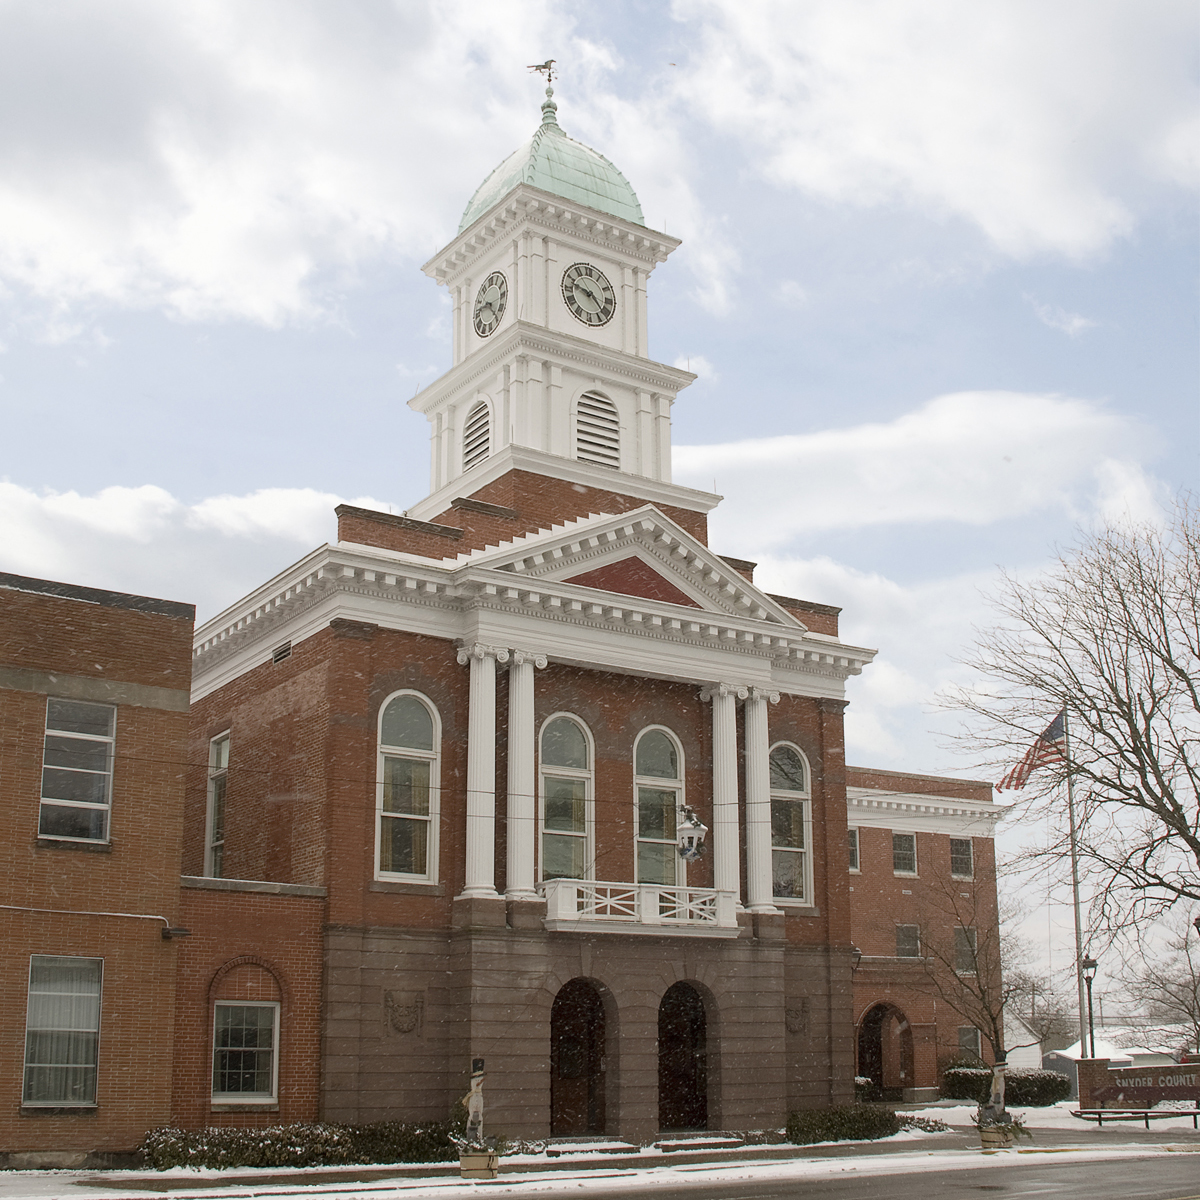 Snyder County Courthouse, Middleburg, PA